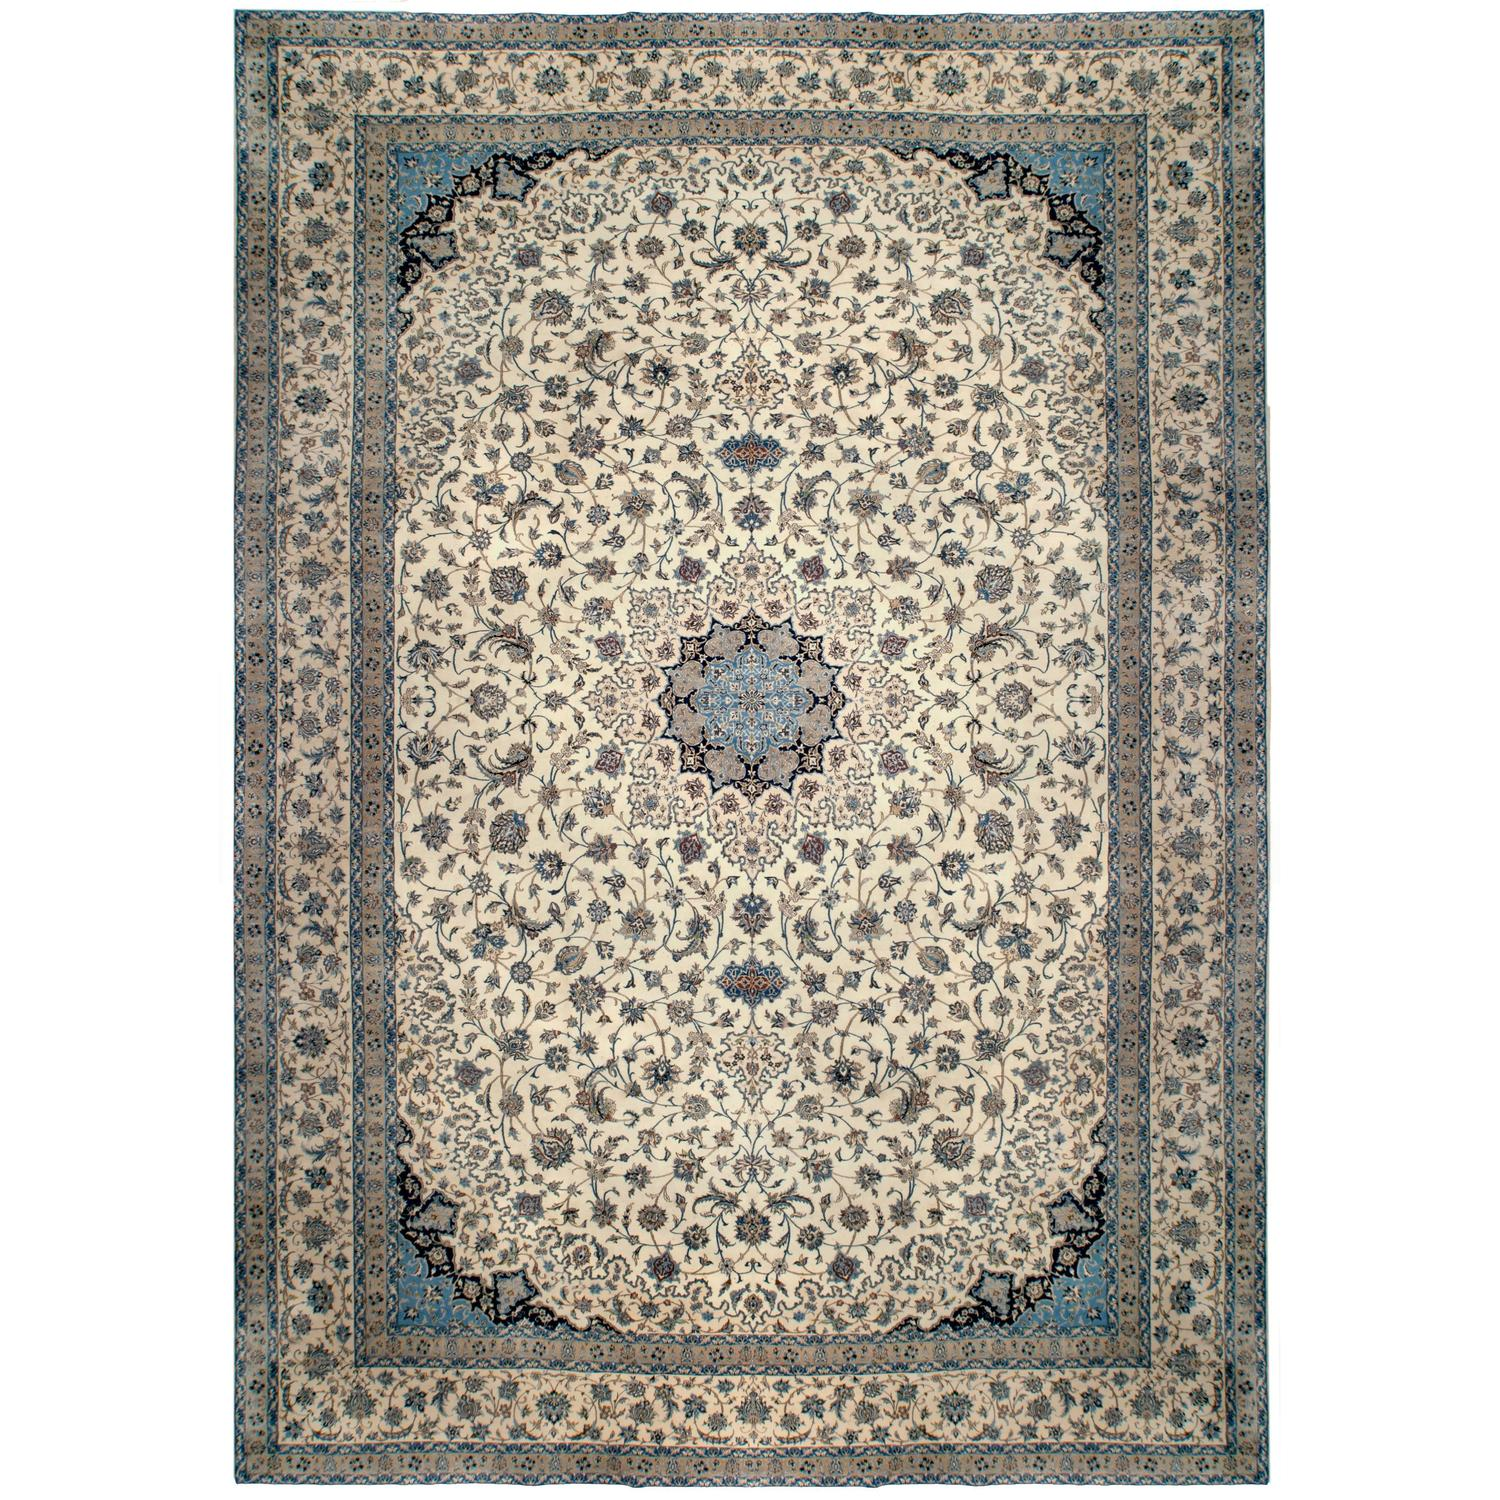 Ivory Wool And Silk Persian Naein Area Rug For Sale At 1stdibs: Large Fine Persian Vintage Nain Rug, Wool And Silk For